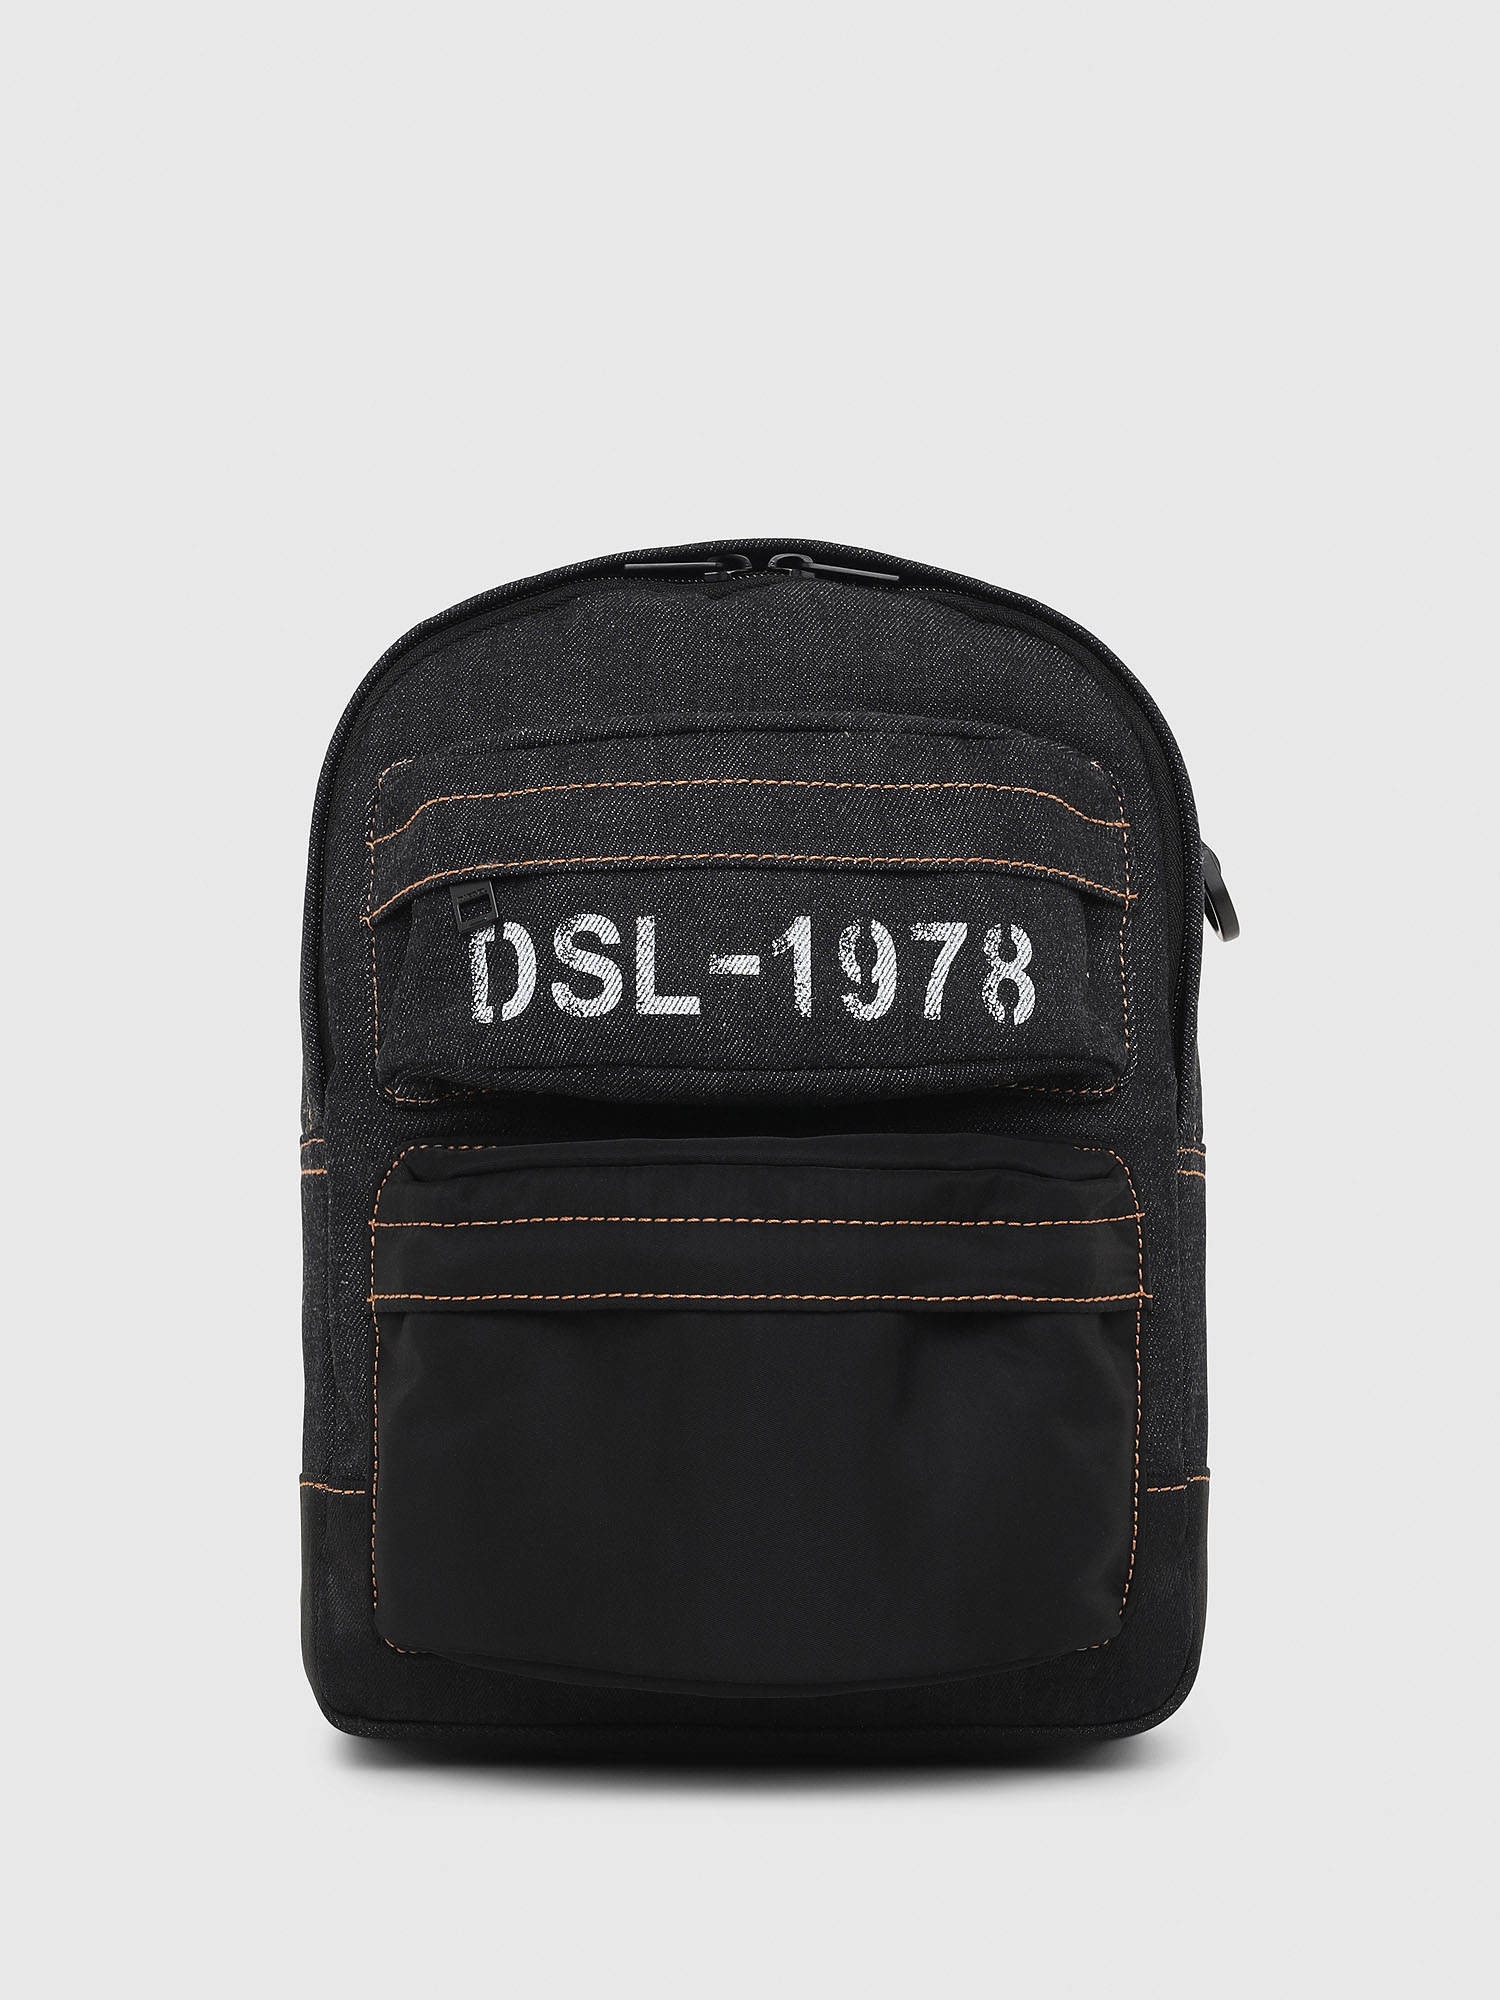 Diesel Backpacks P0184 - Blue